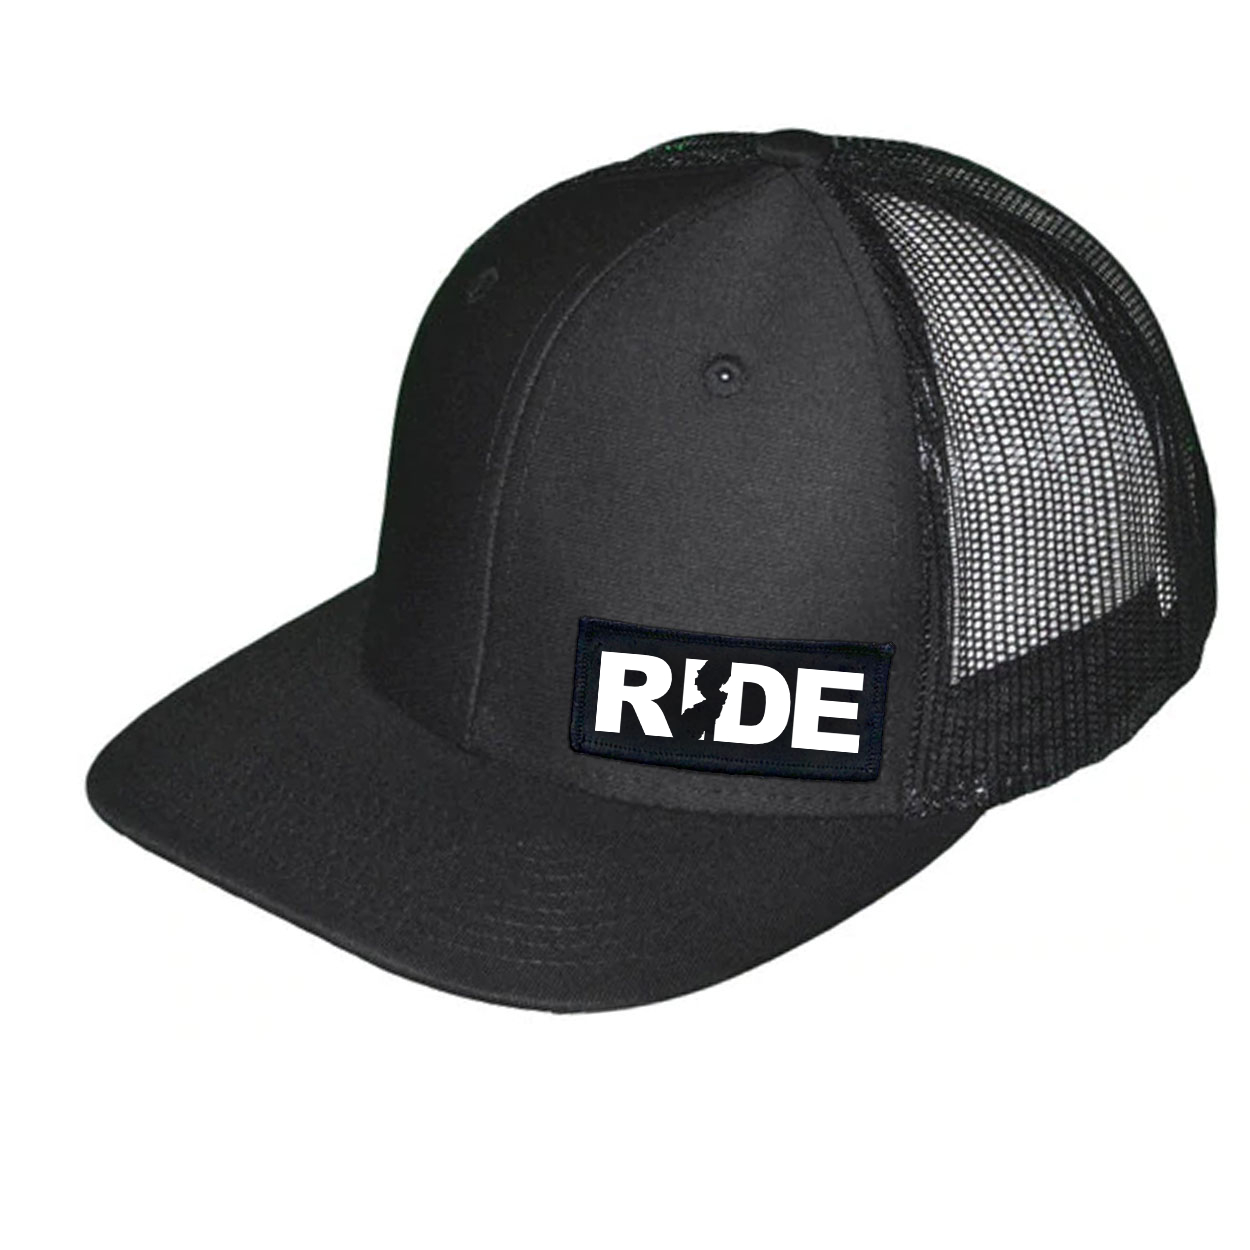 Ride New Jersey Night Out Woven Patch Snapback Trucker Hat Black (White Logo)